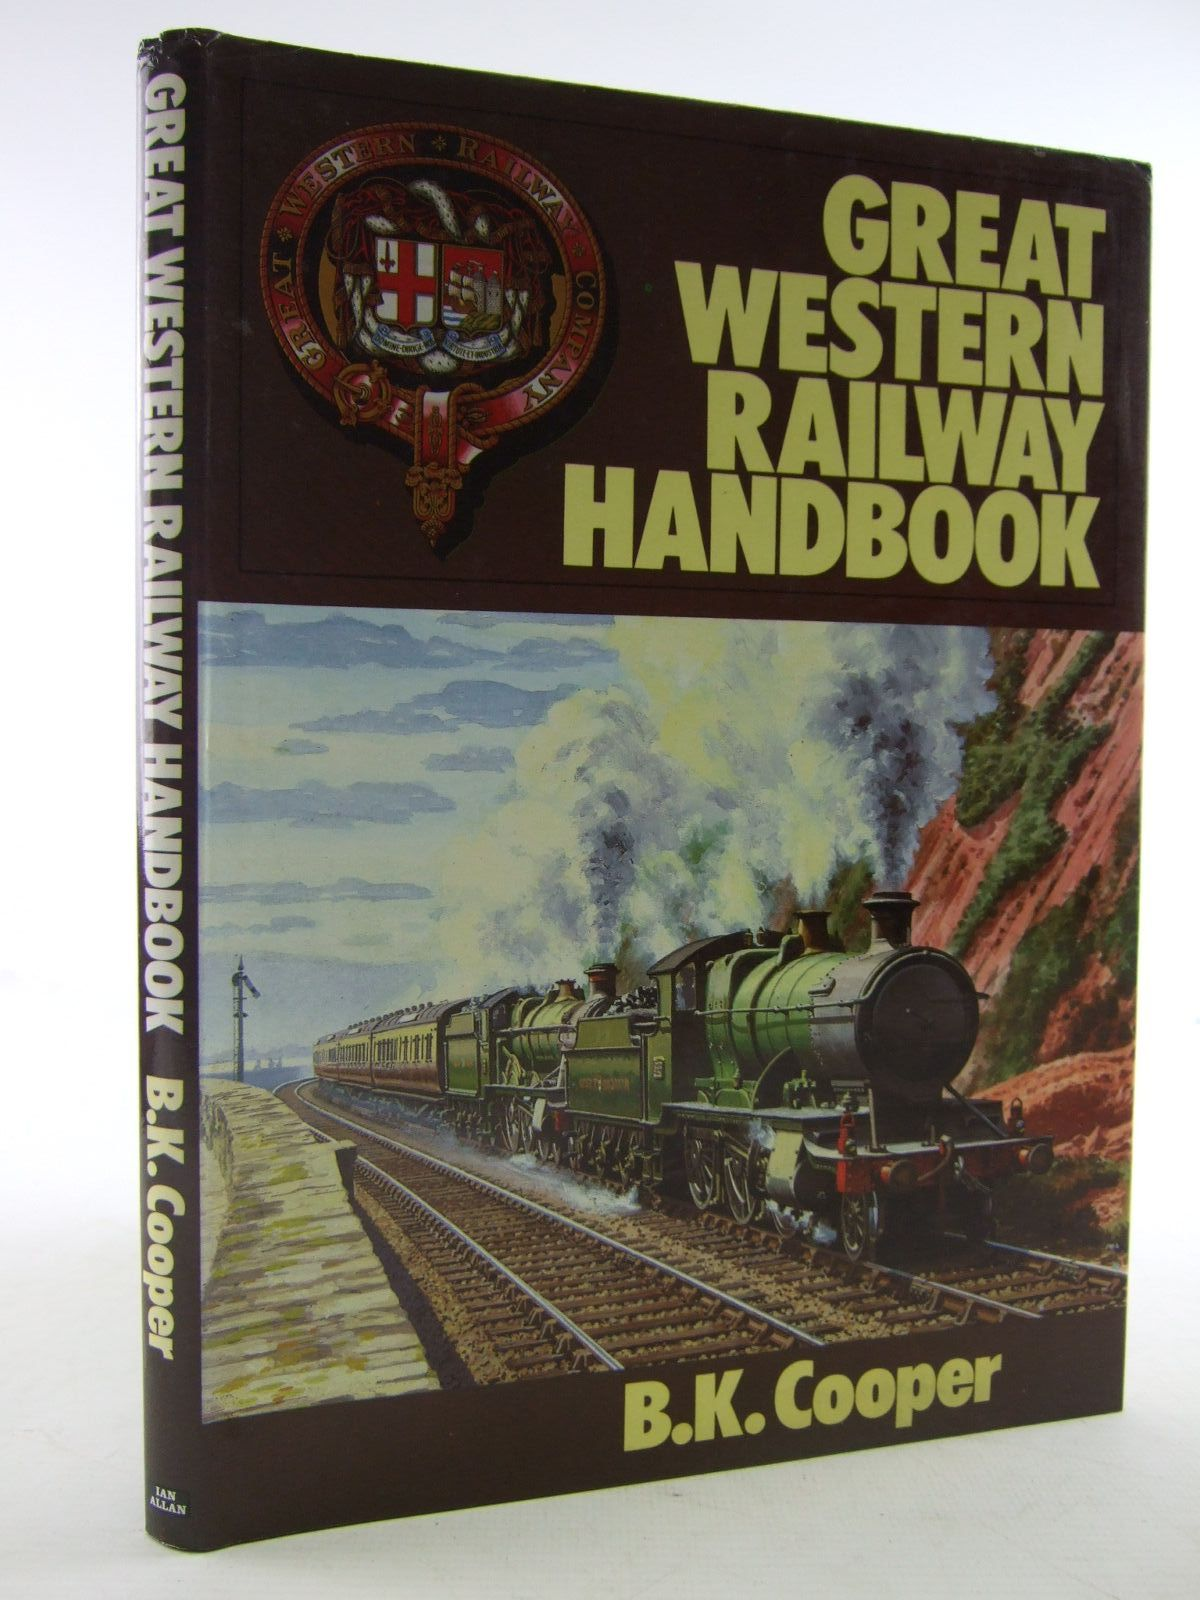 Photo of GREAT WESTERN RAILWAY HANDBOOK written by Cooper, B.K. published by Ian Allan Ltd. (STOCK CODE: 1706541)  for sale by Stella & Rose's Books